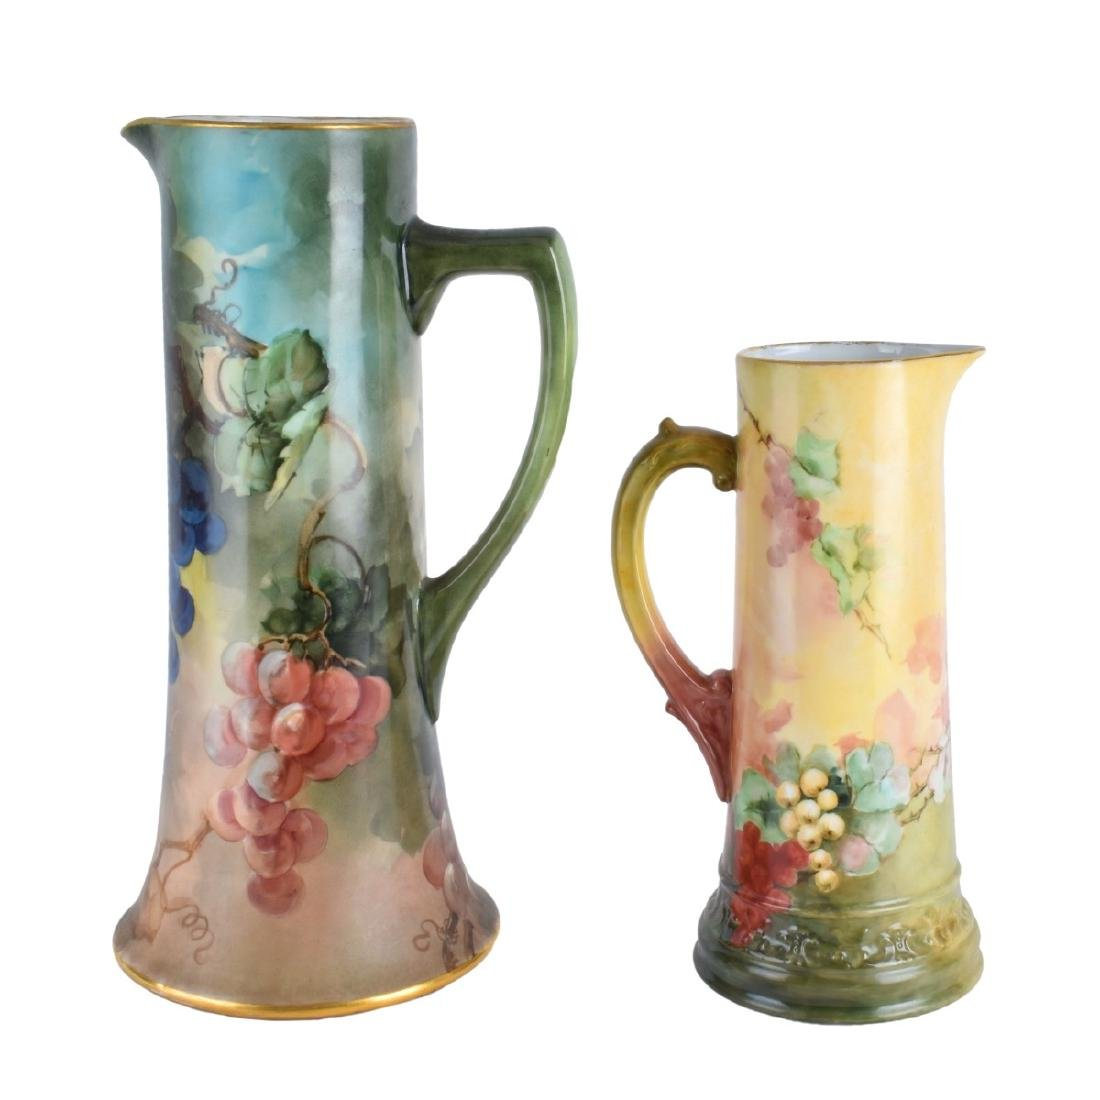 Limoges Pitchers - 3